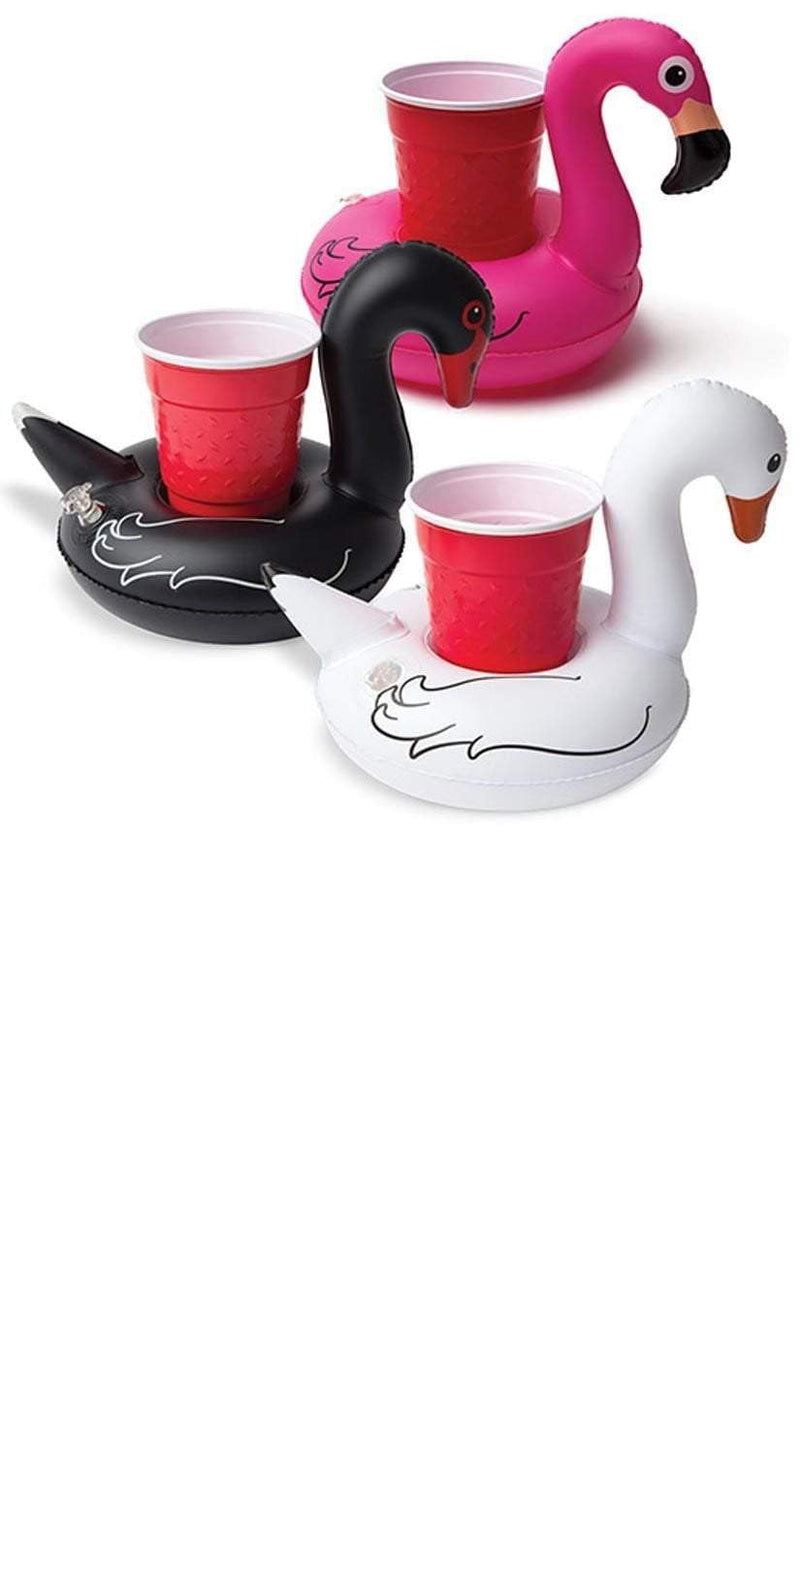 Big Mouth Tropical Birds Beverage Boats BMDF-0002: